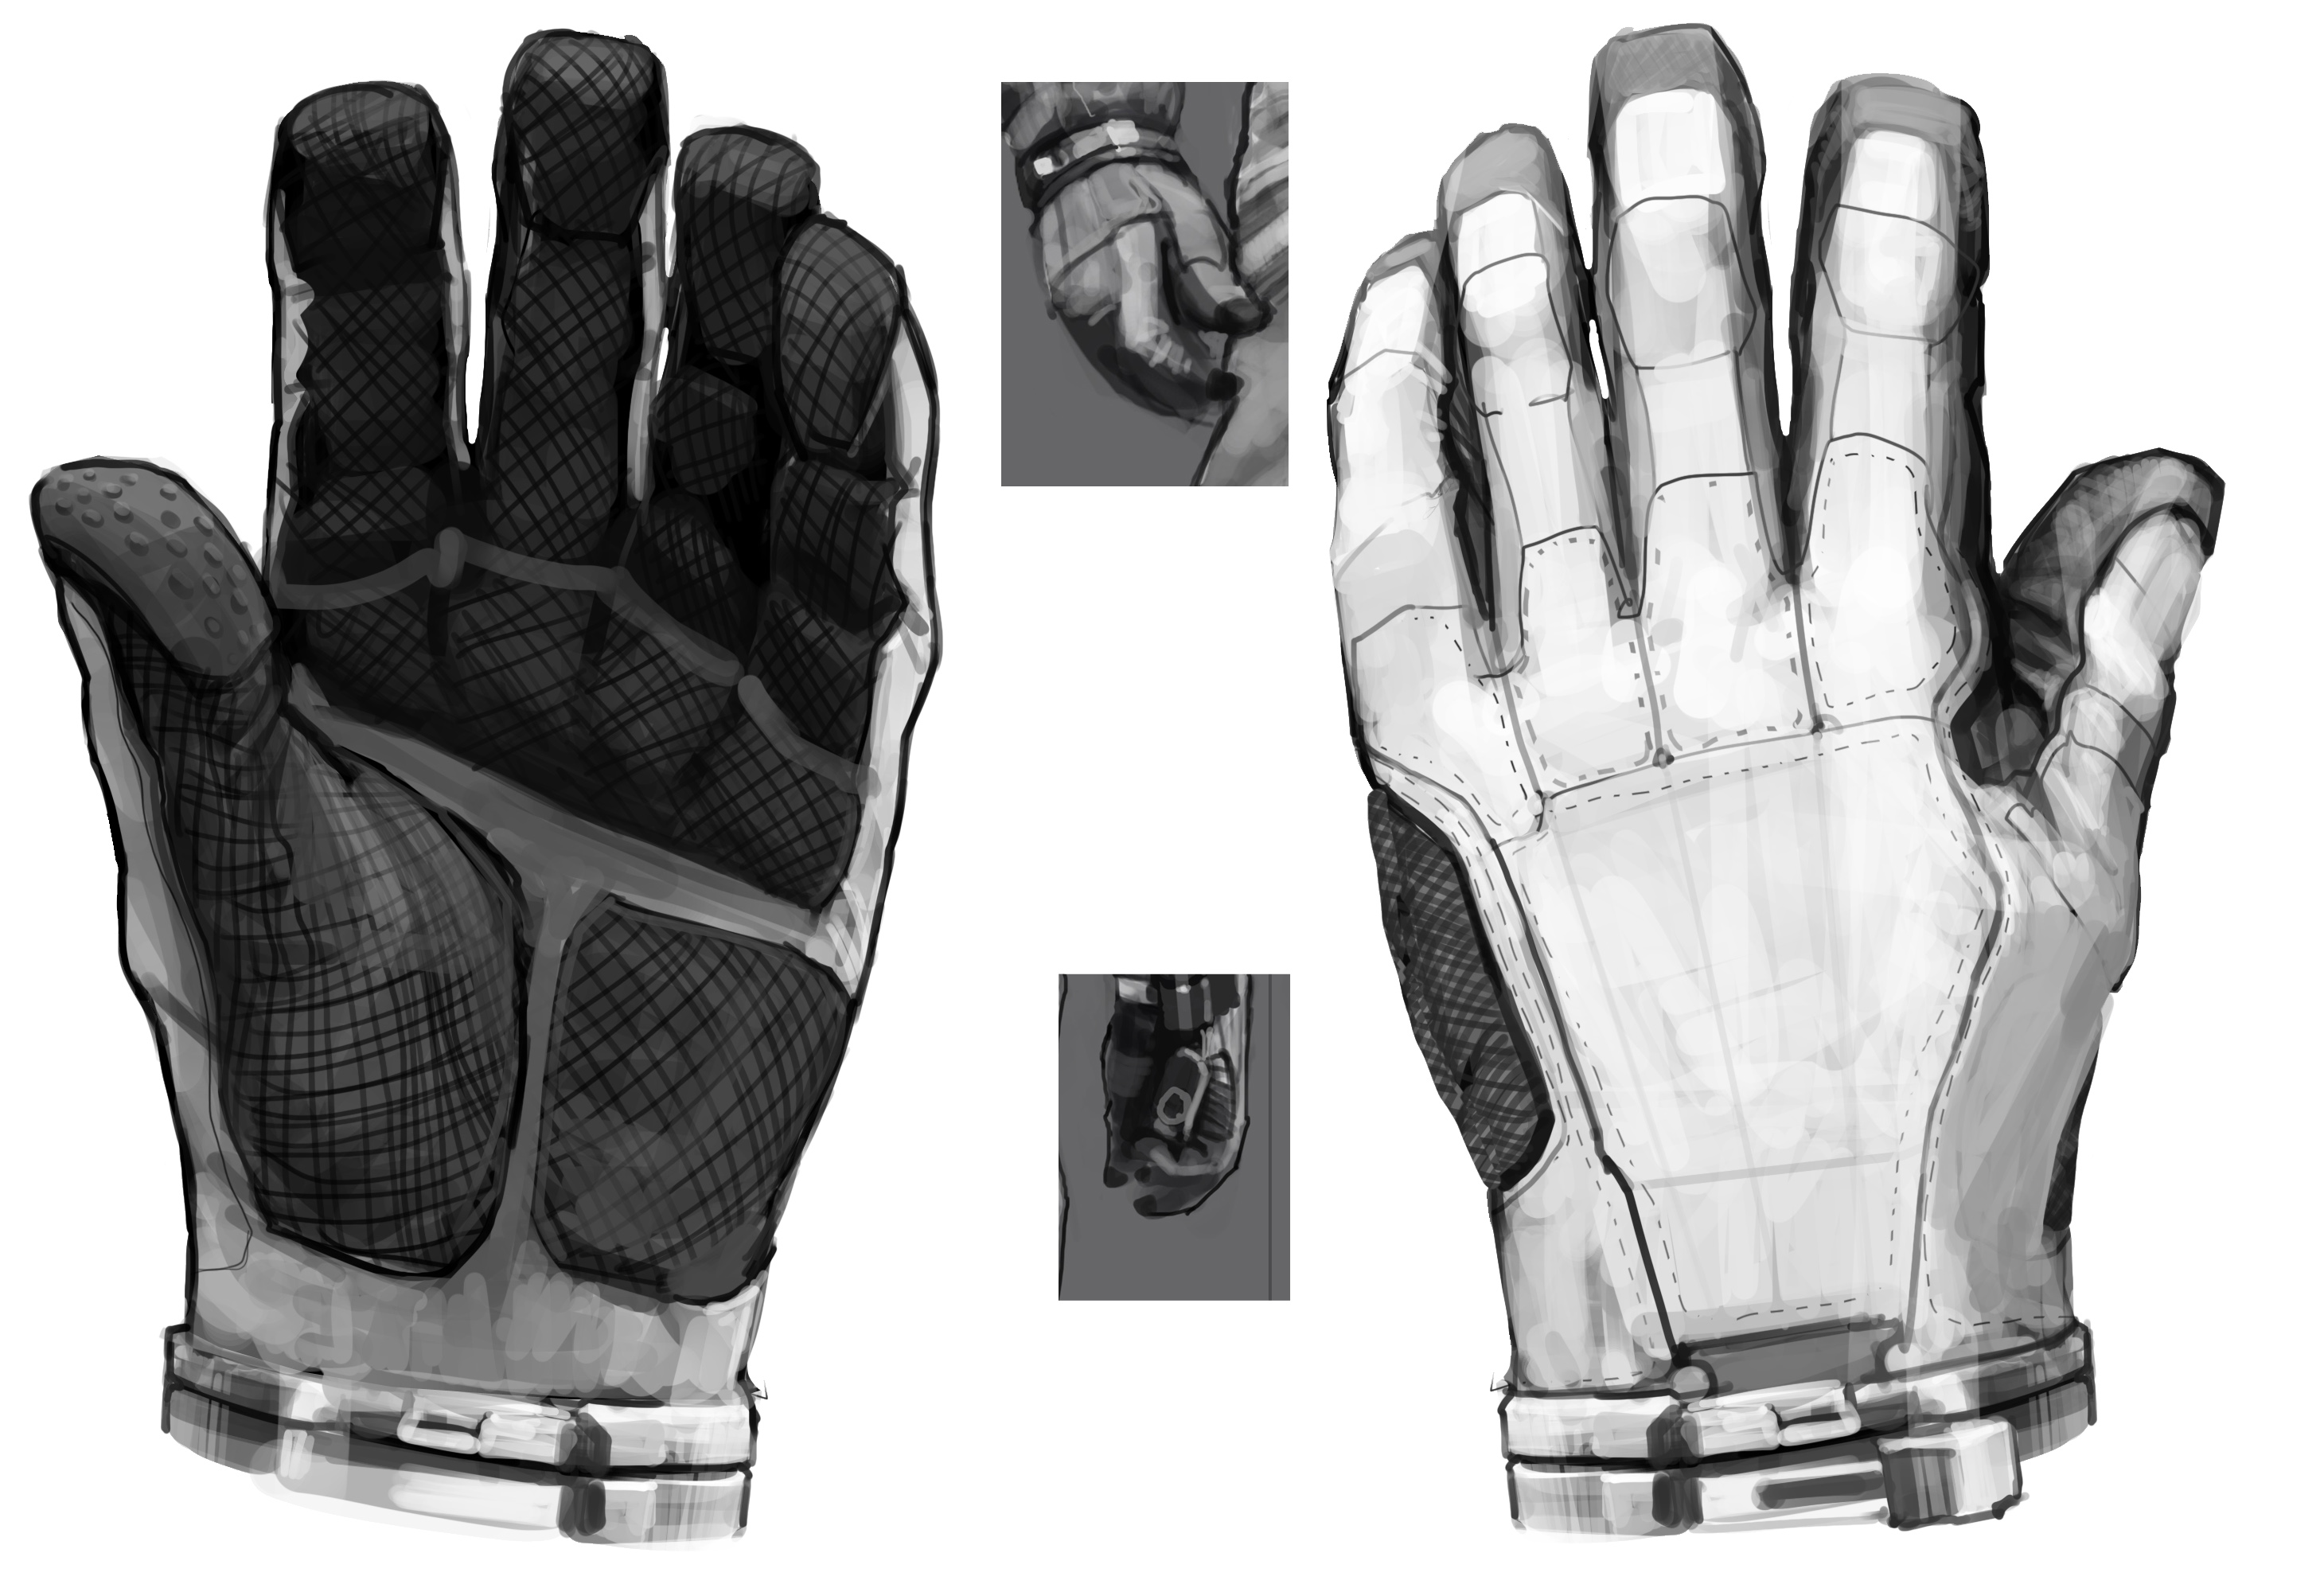 interstellar_space_suit_glove